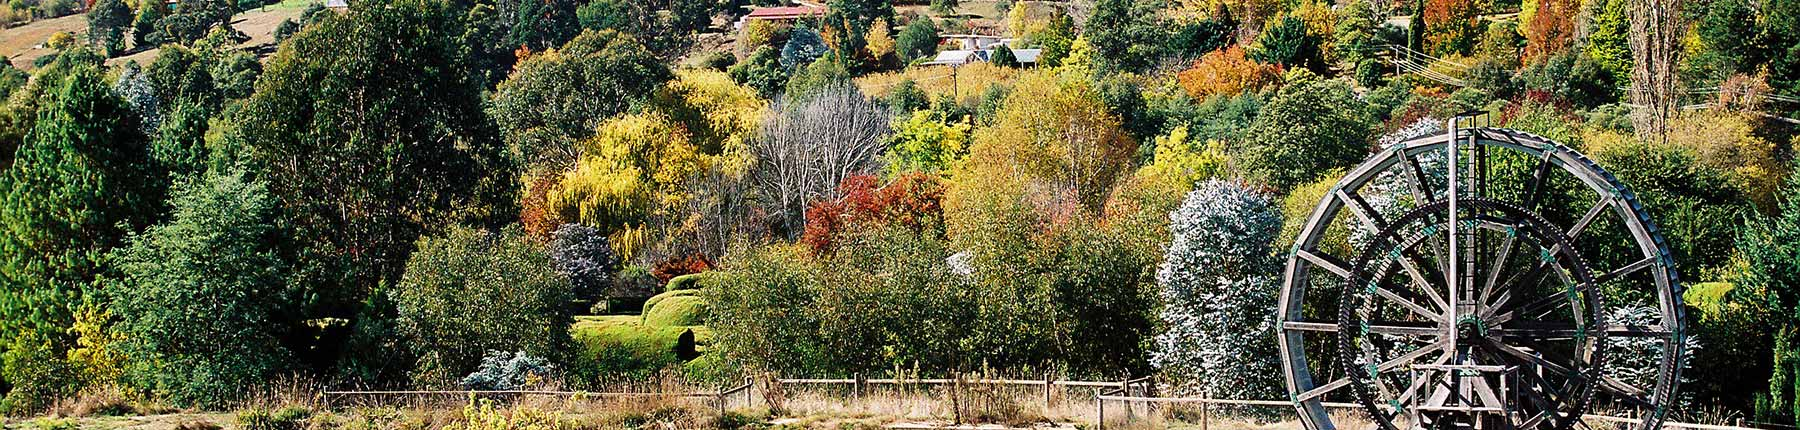 18Our-valley-the-most-beautiful-in-Victoria.jpg